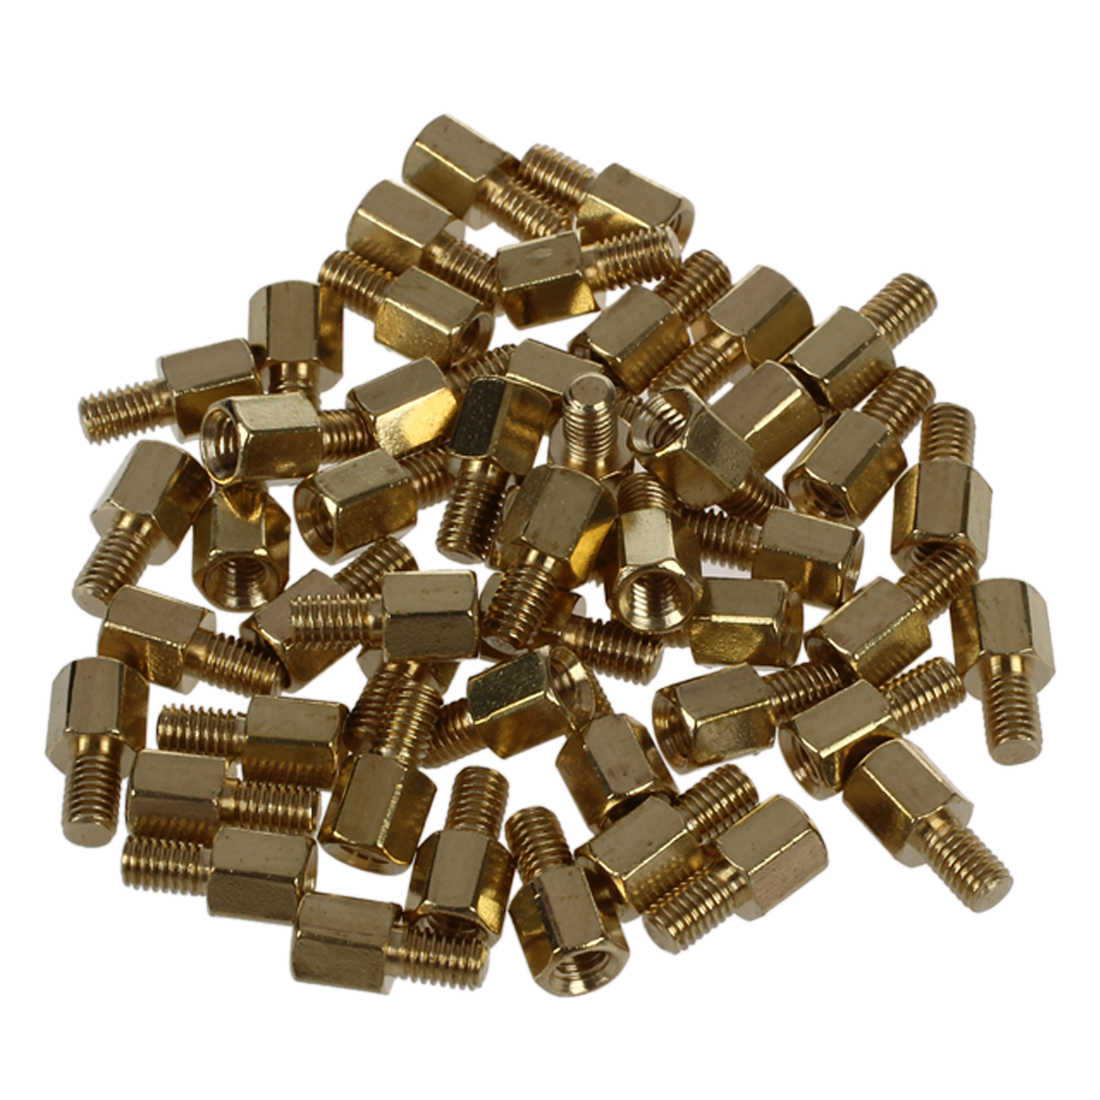 50 Pcs Brass Screw PCB Standoffs Hexagonal Spacers M3 Male x M3 Female 5mm